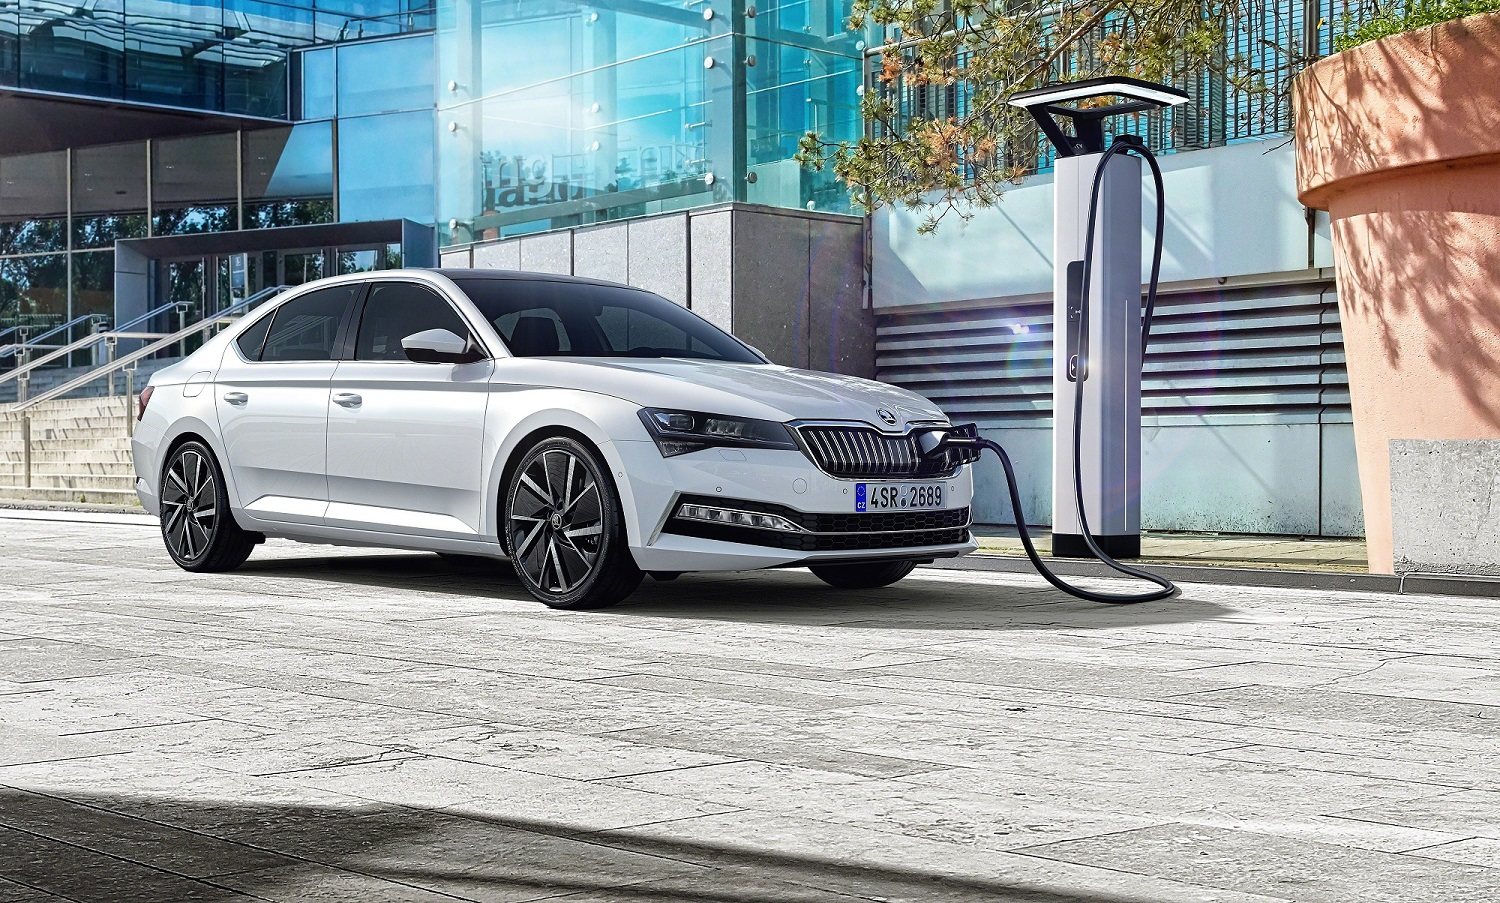 The Superb hybrid features a plug in the radiator grille